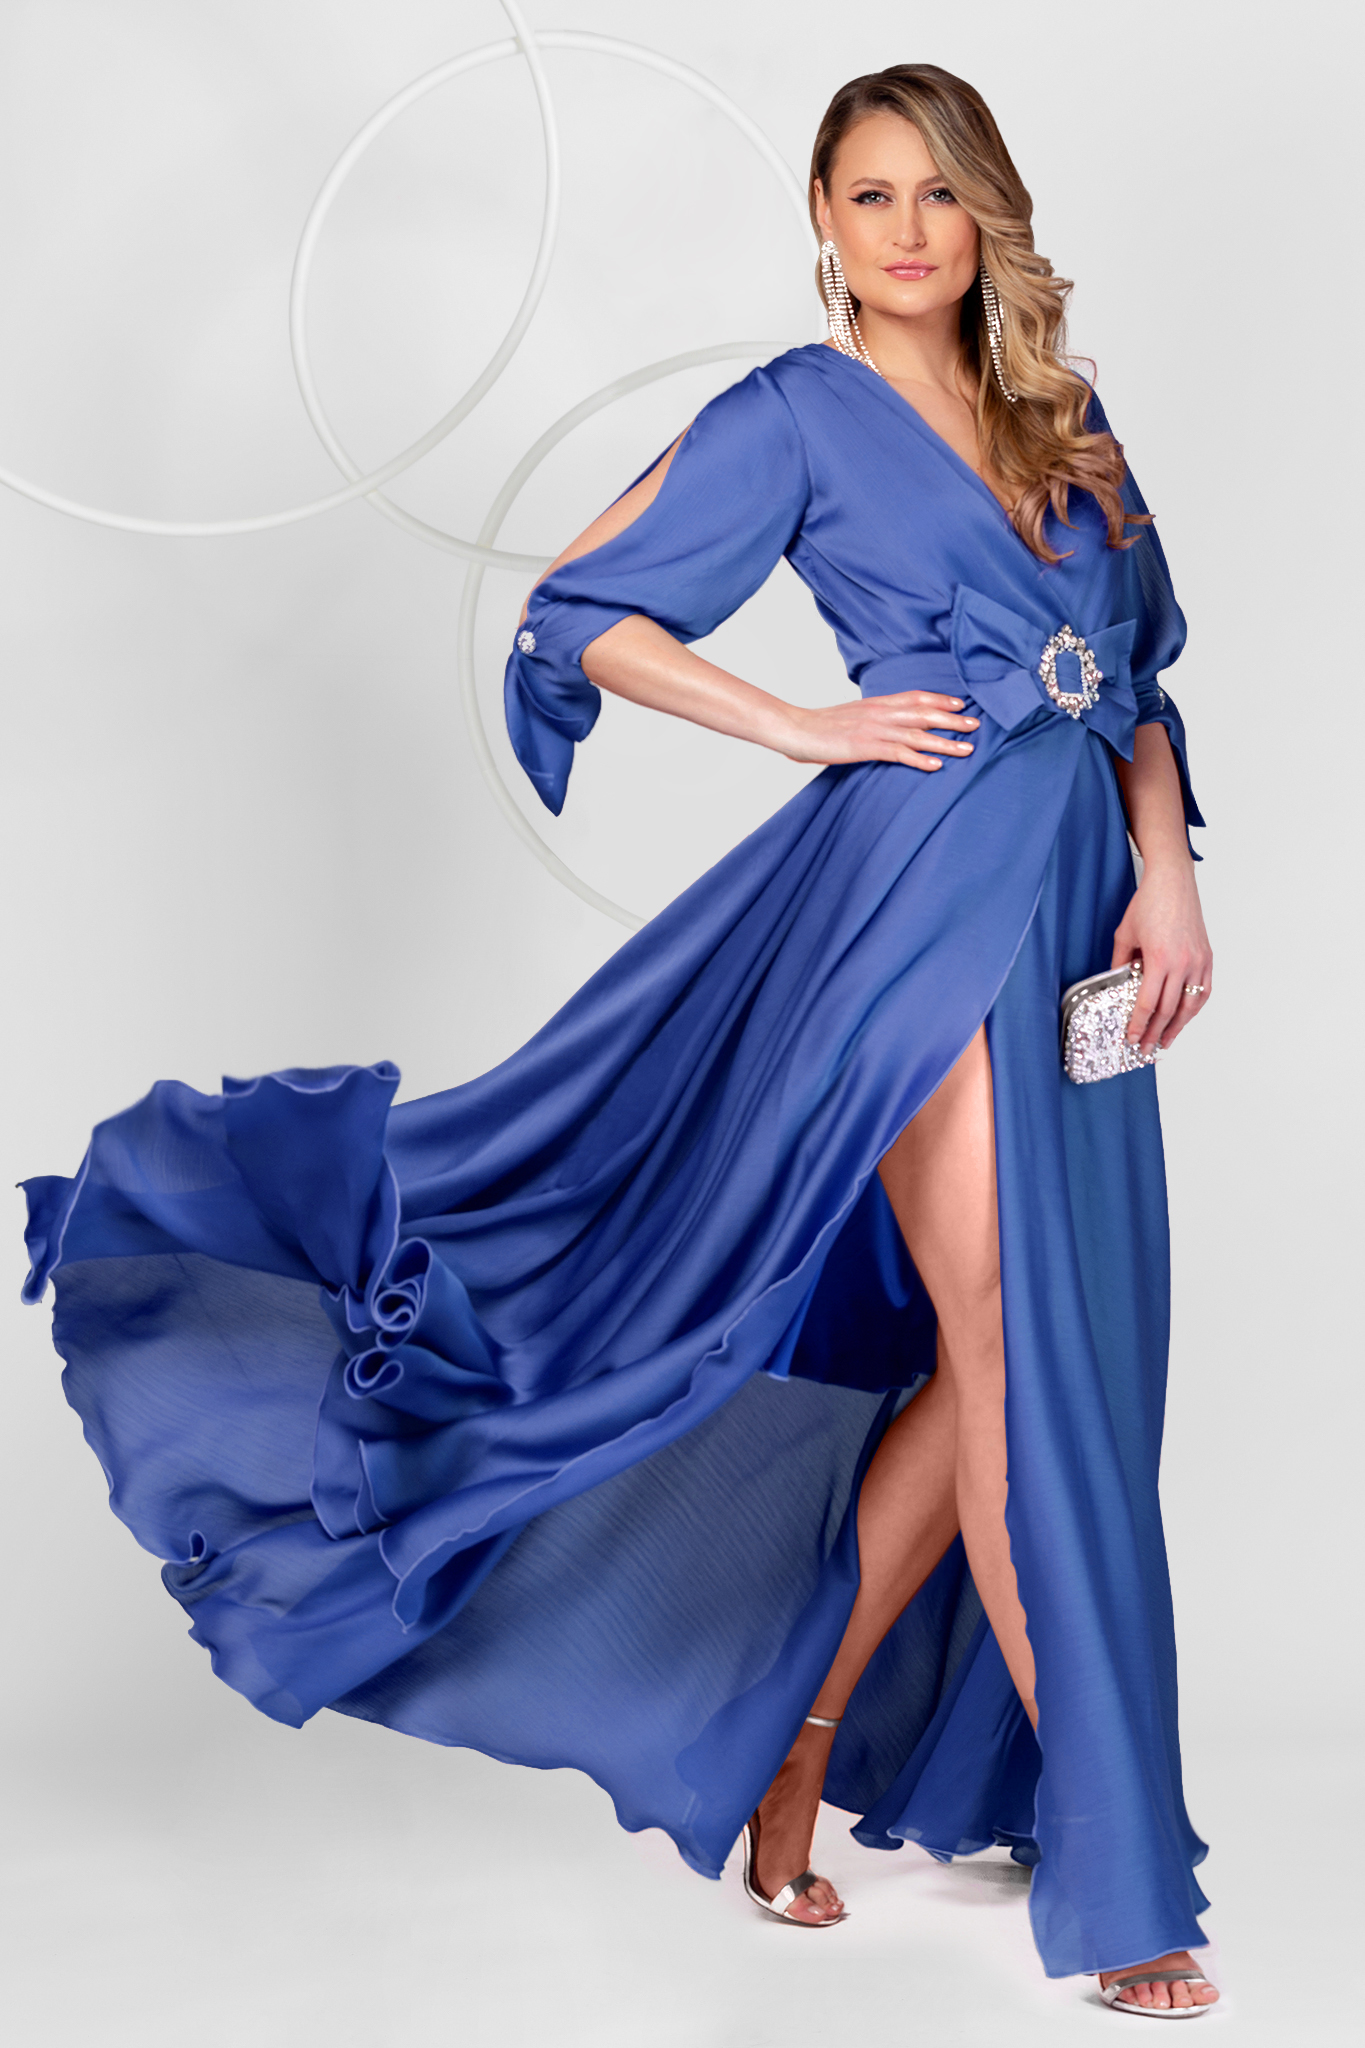 Blue dress long occasional from veil fabric cloche with elastic waist with cut-out sleeves